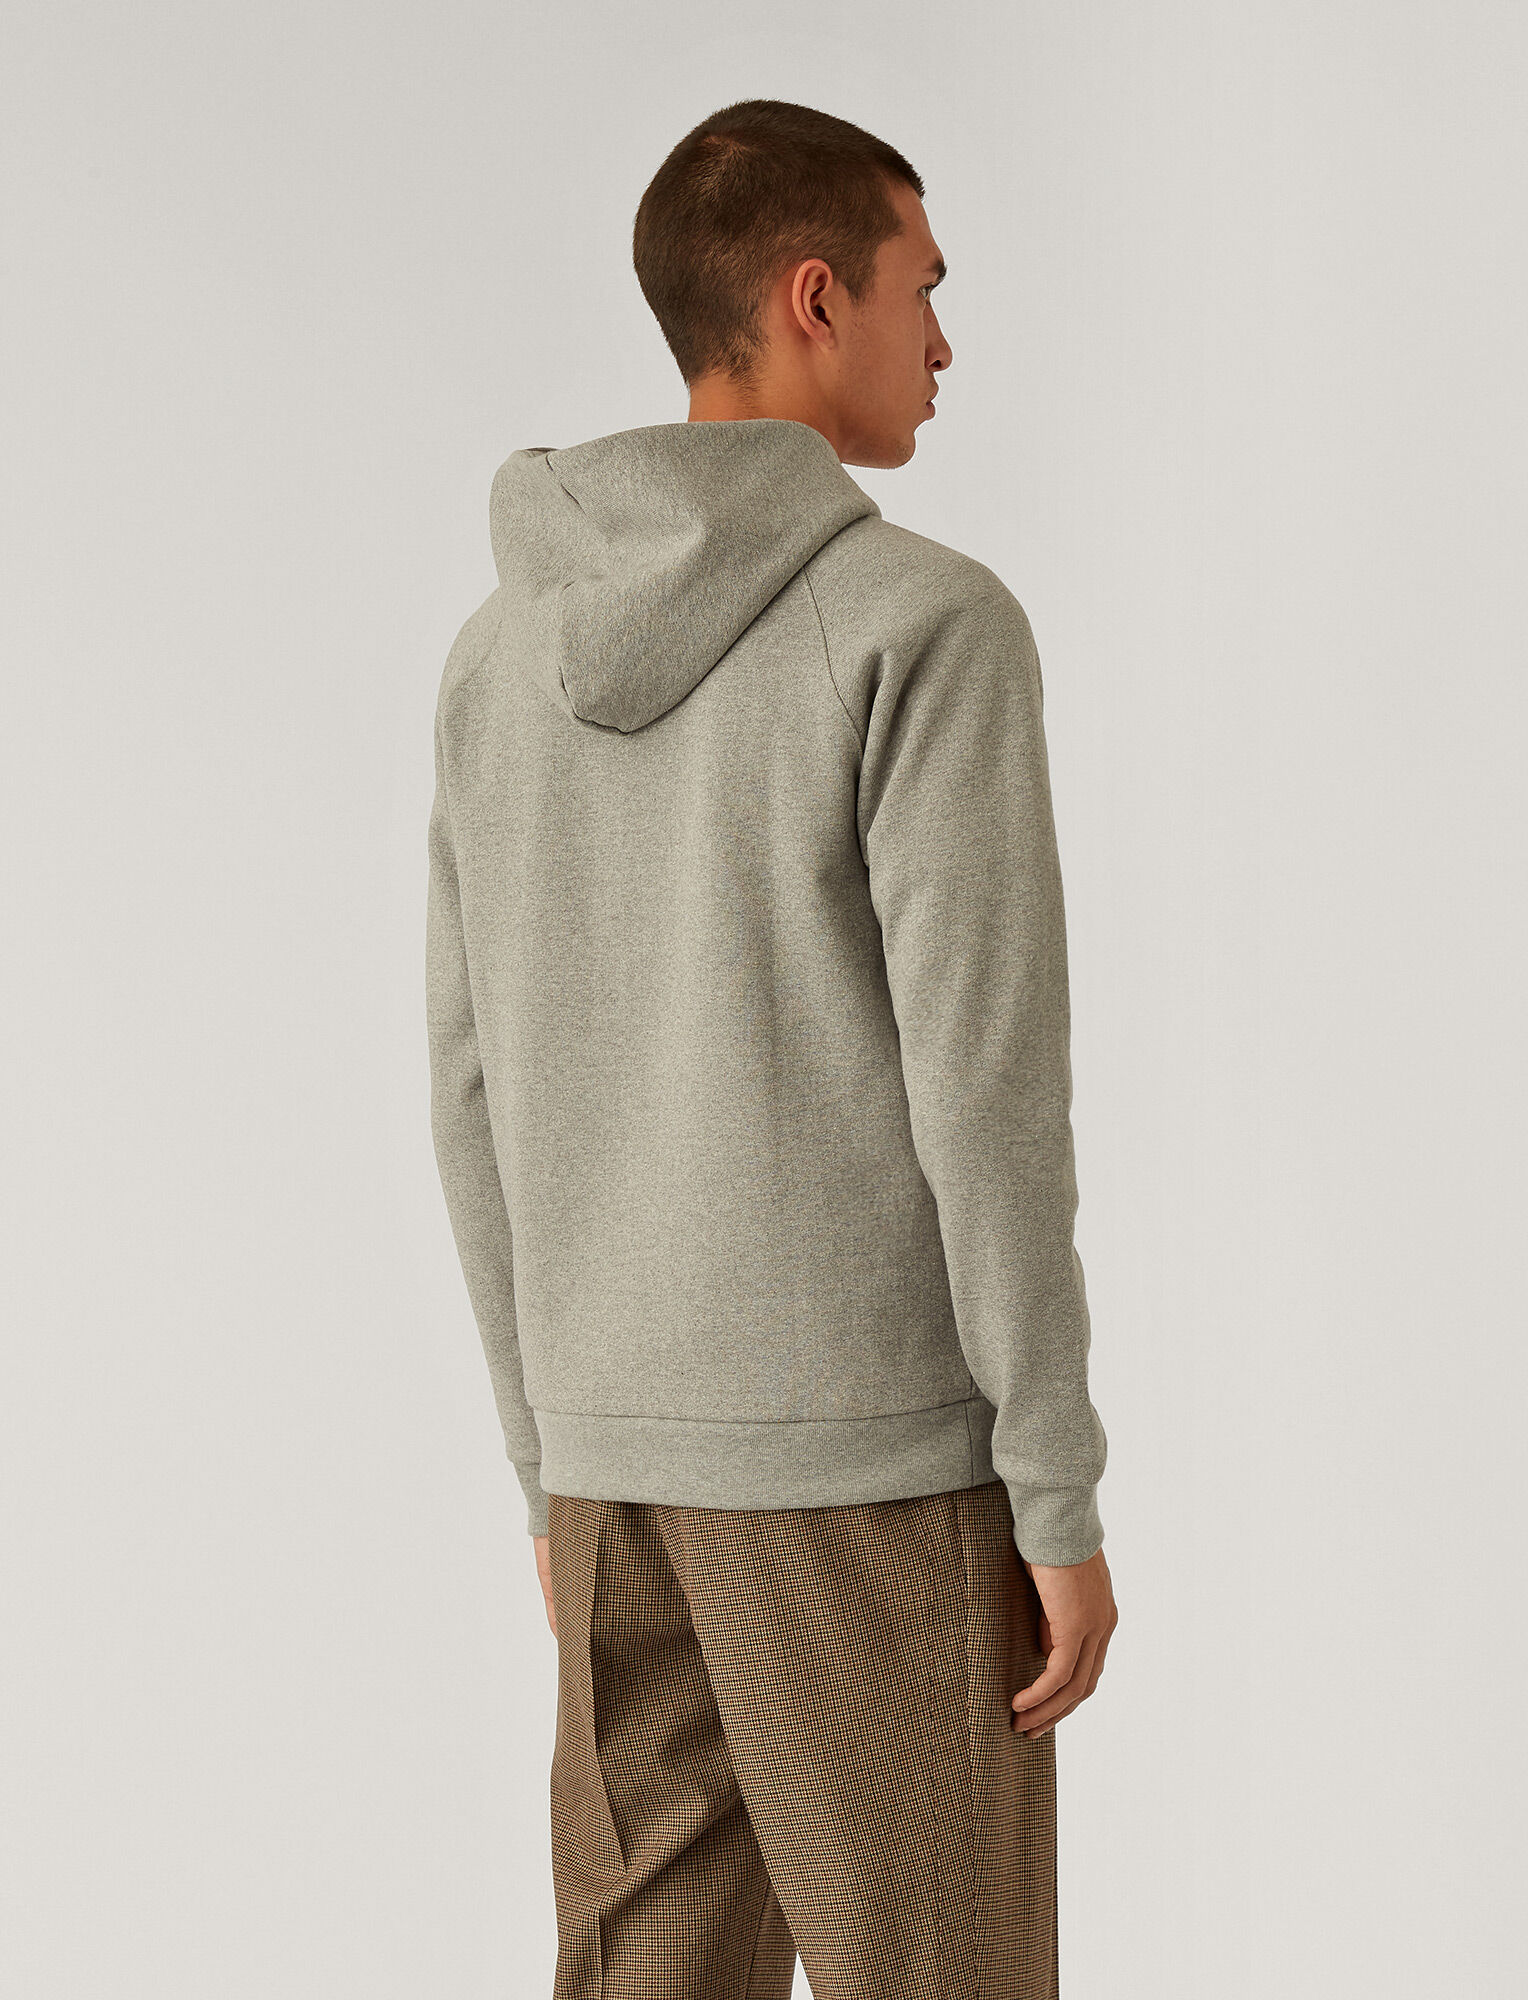 Joseph, Hoodie Cotton Cashmere Terry Jersey, in Light Grey